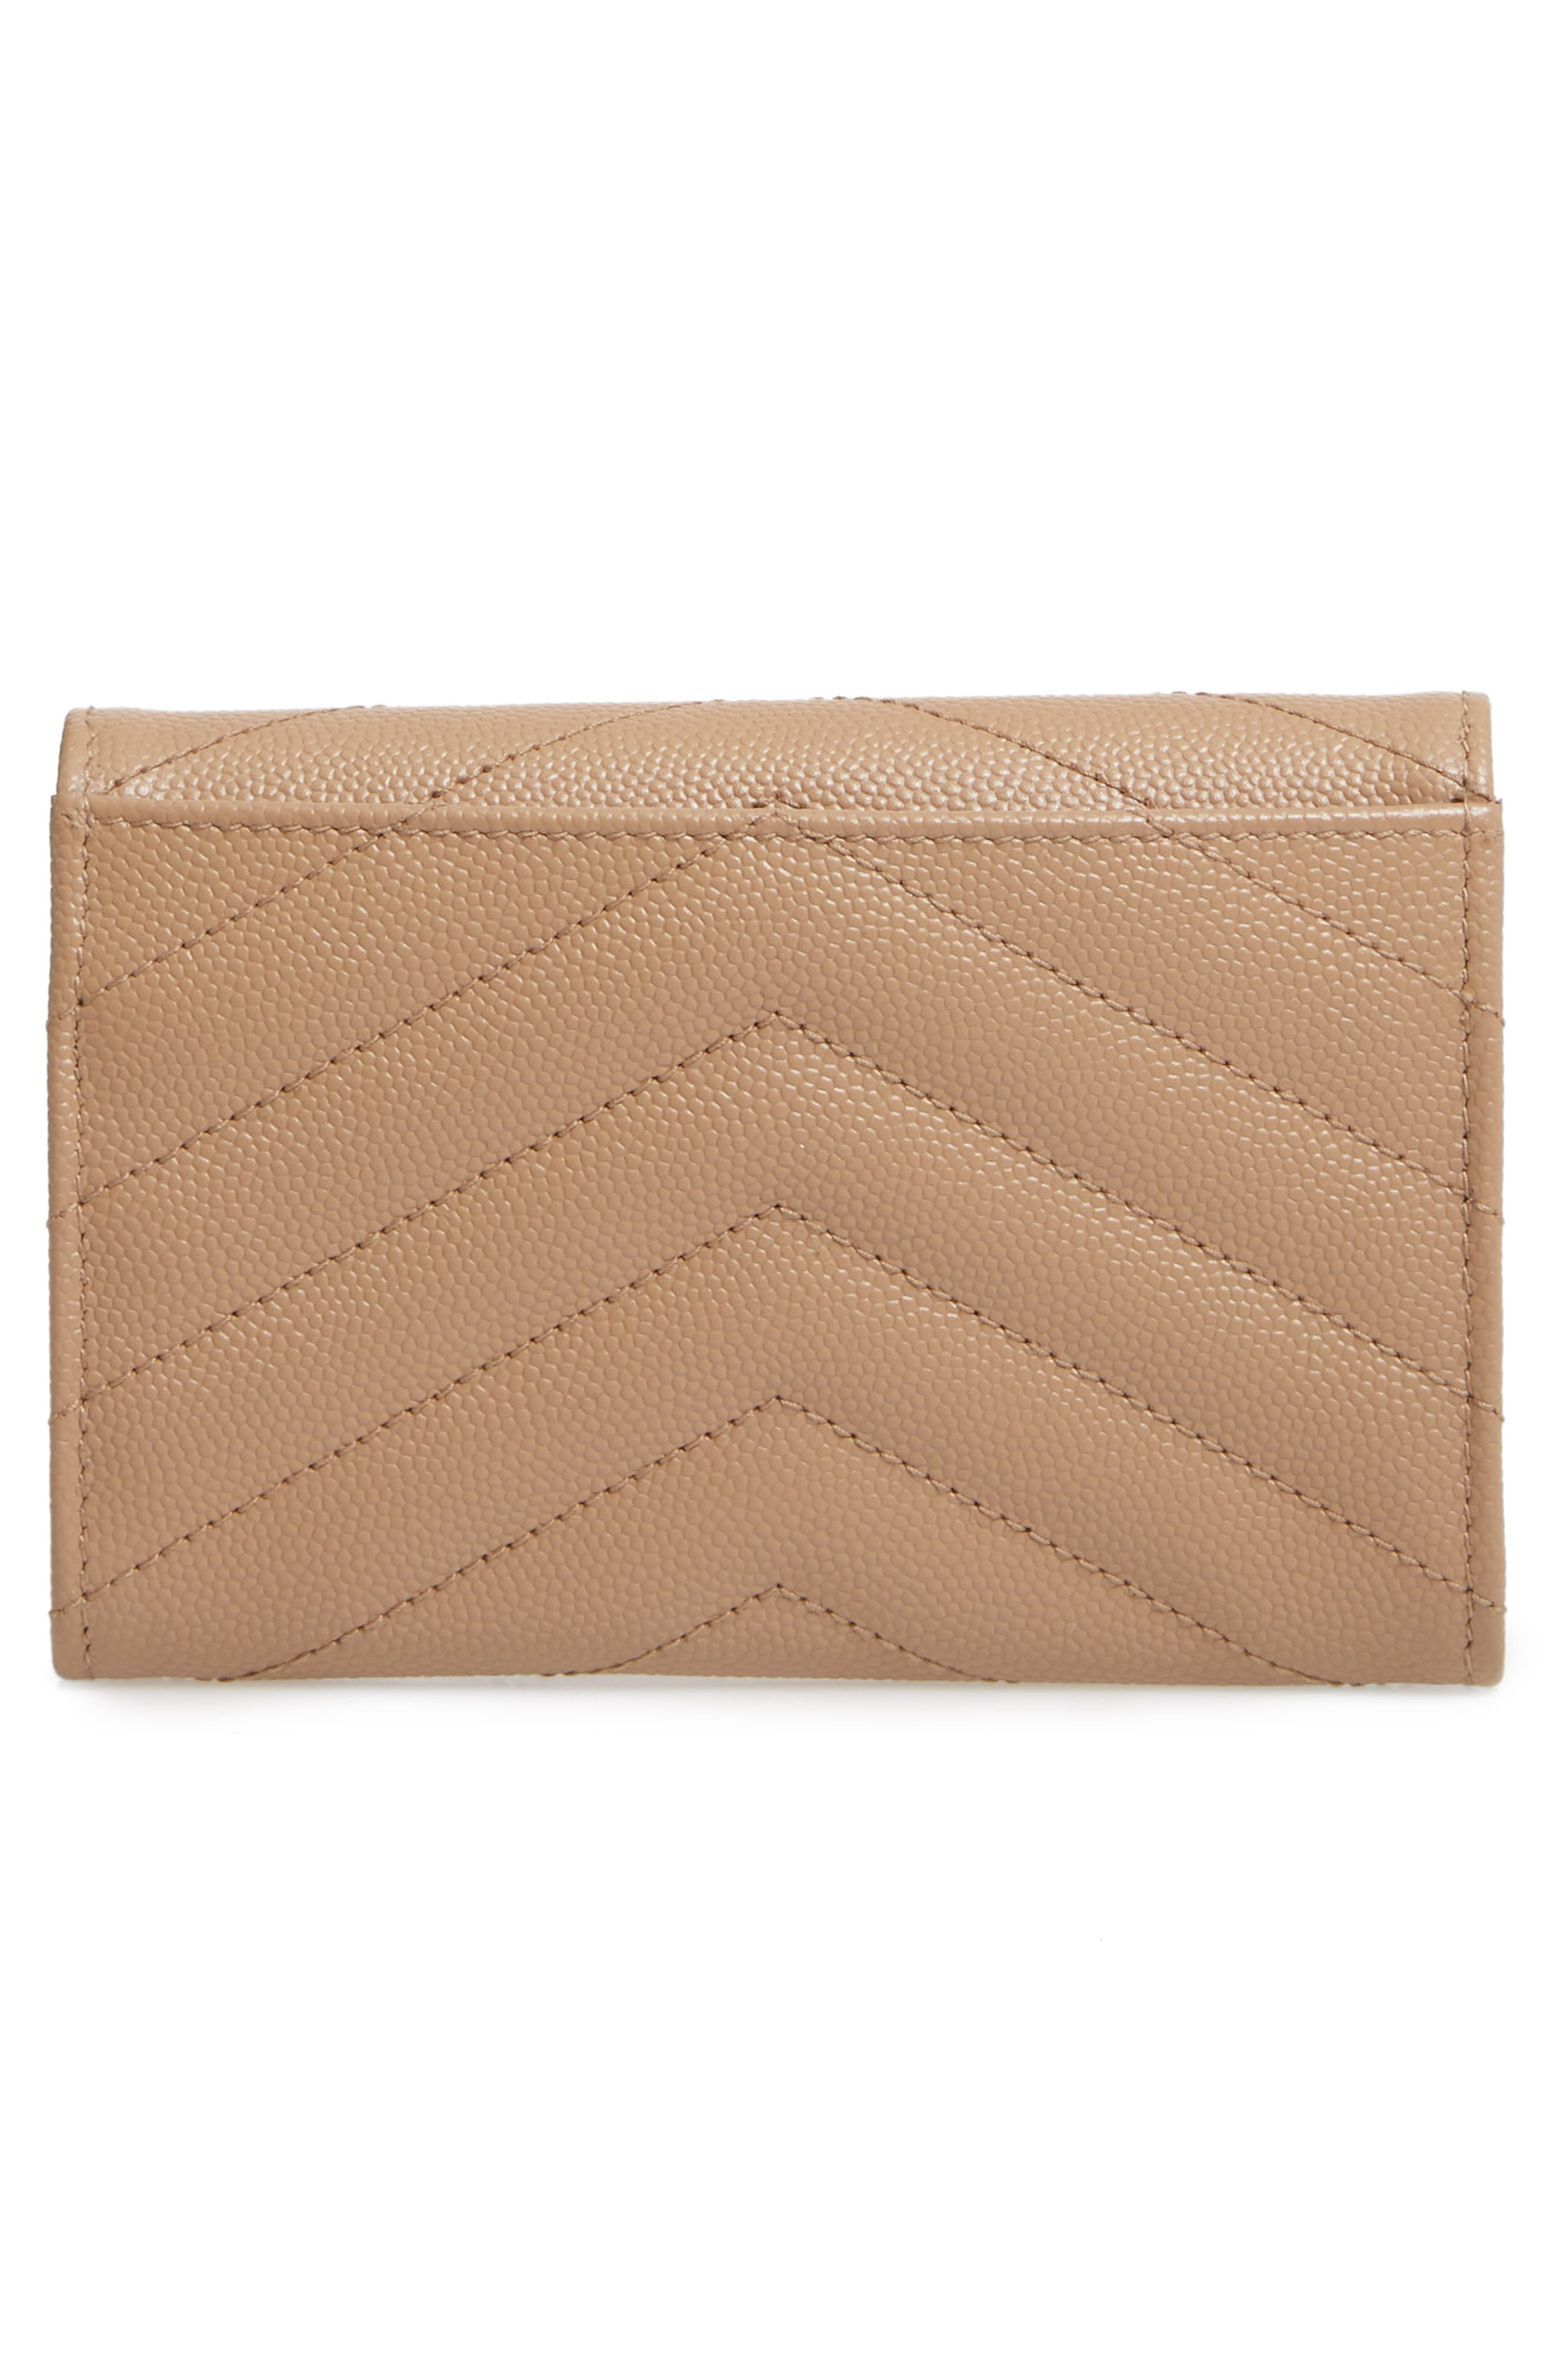 SAINT LAURENT, 'Monogram' Quilted Leather French Wallet, Alternate thumbnail 4, color, 253